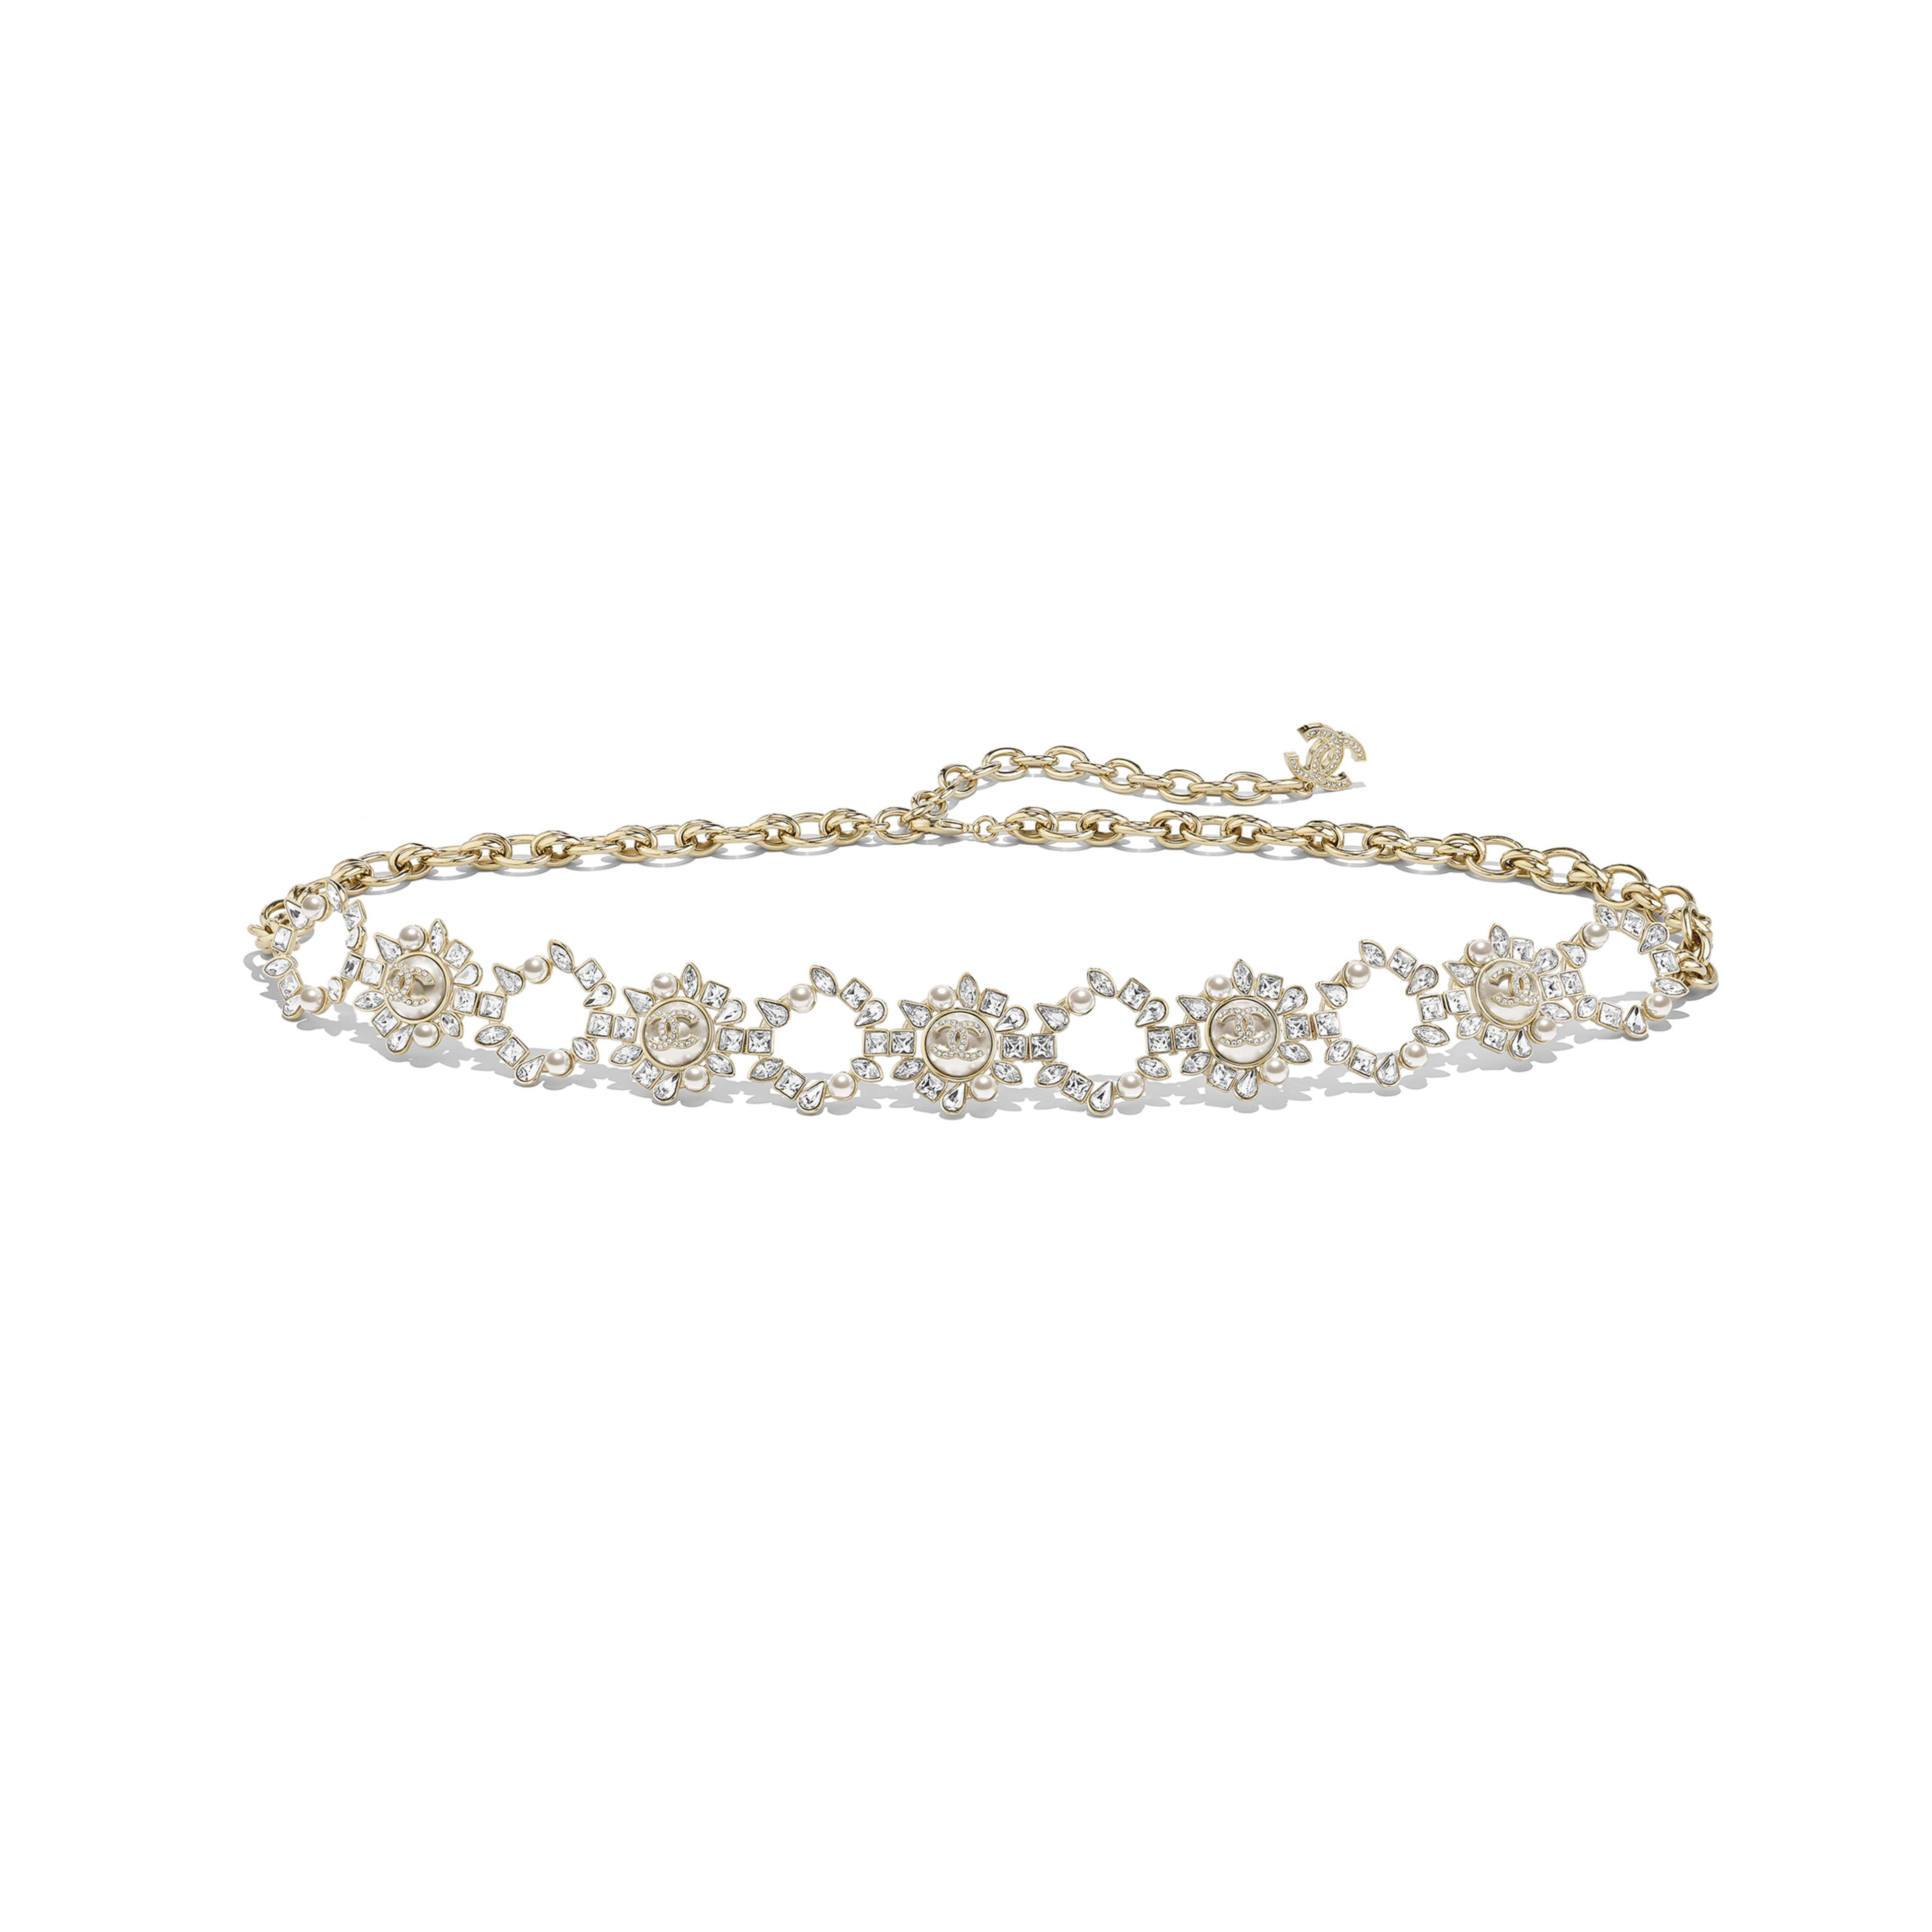 Belt - Gold, Pearly White & Crystal - Metal, Glass Pearls, Strass & Resin - Default view - see full sized version